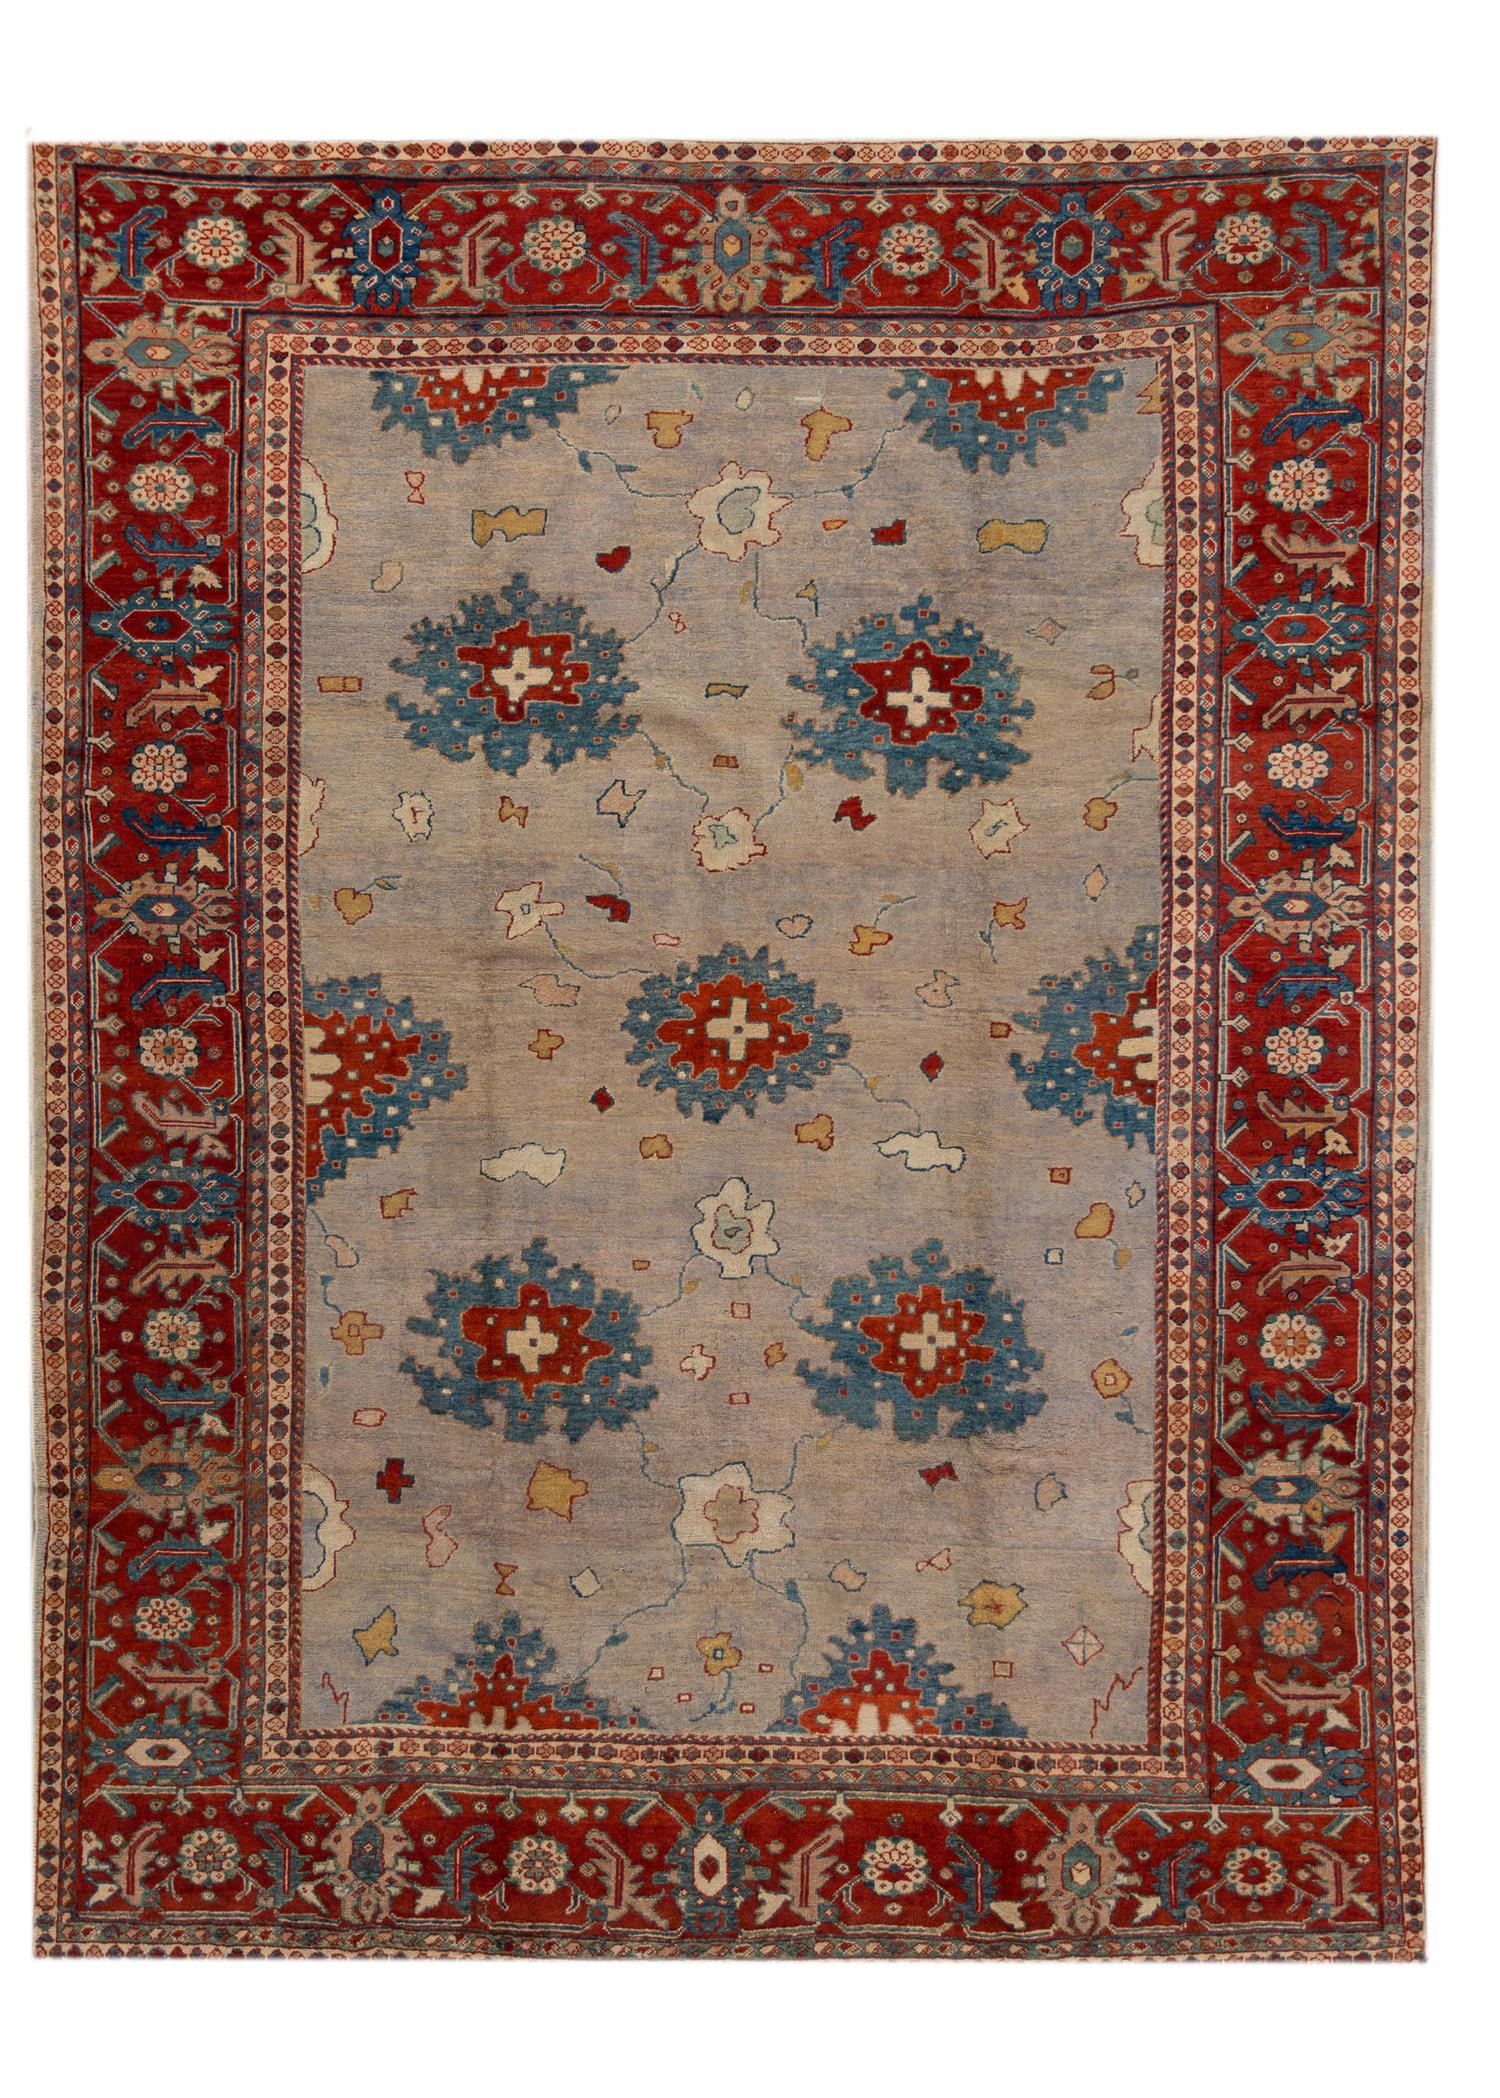 Antique Mahal Rug, 9X11